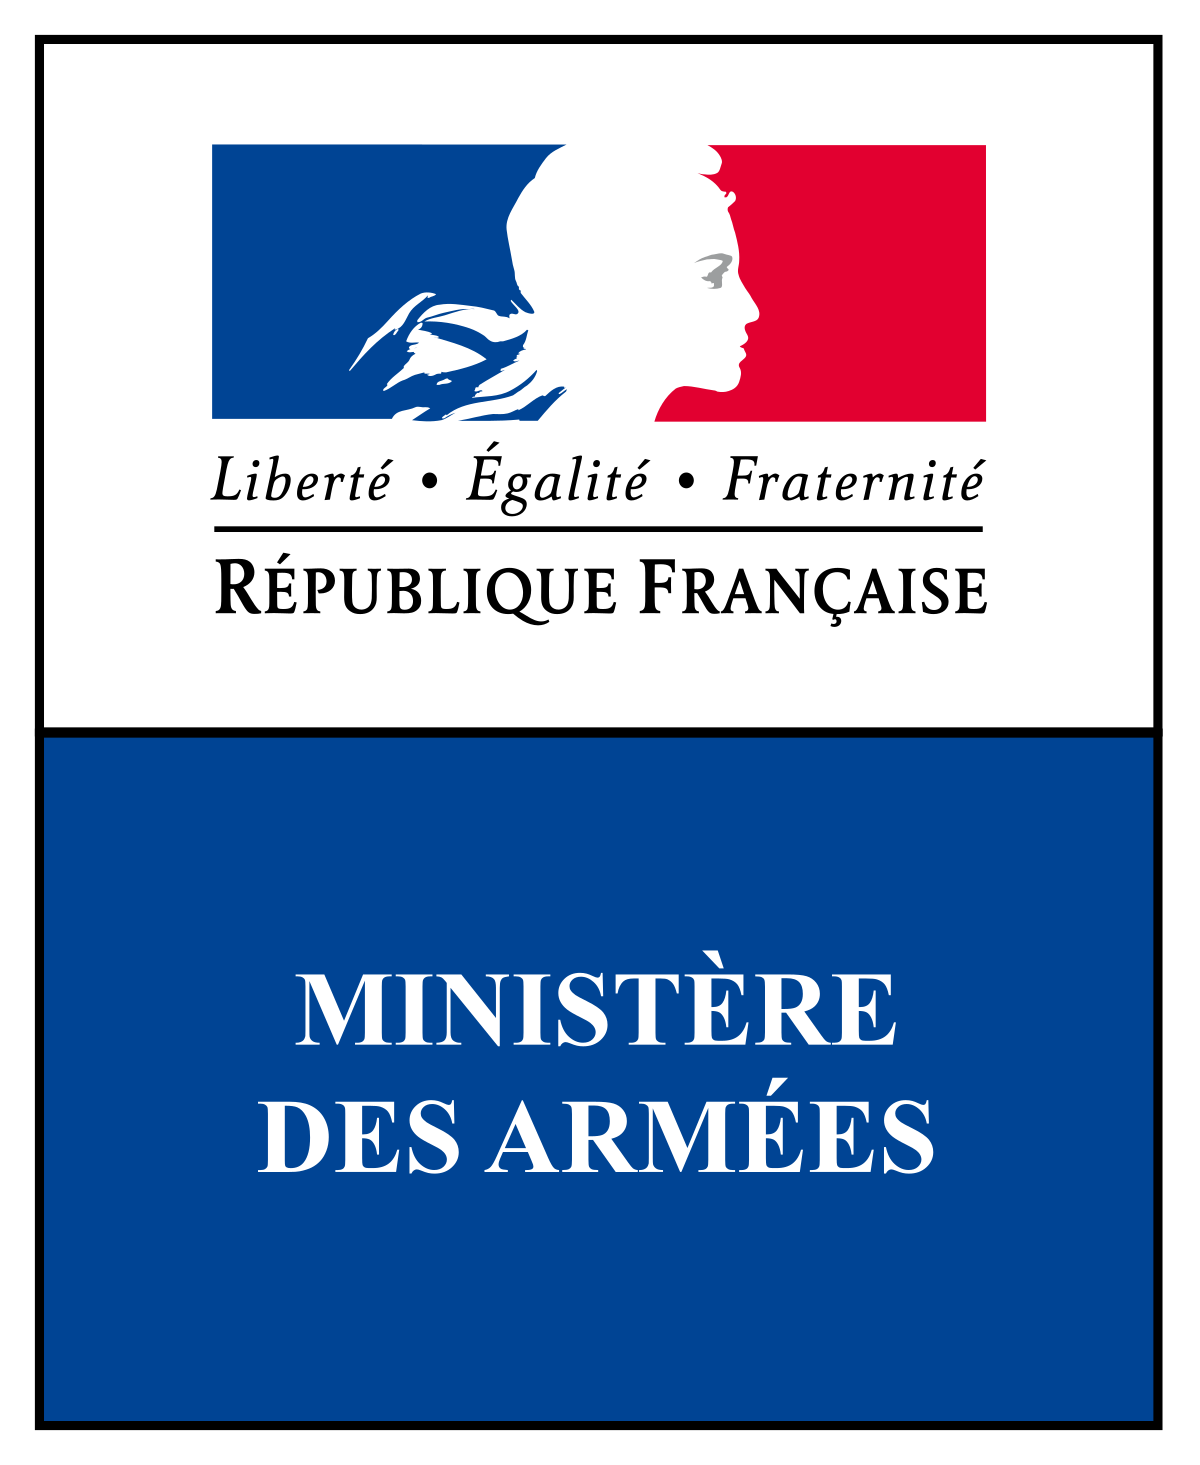 logo-ministere-armees